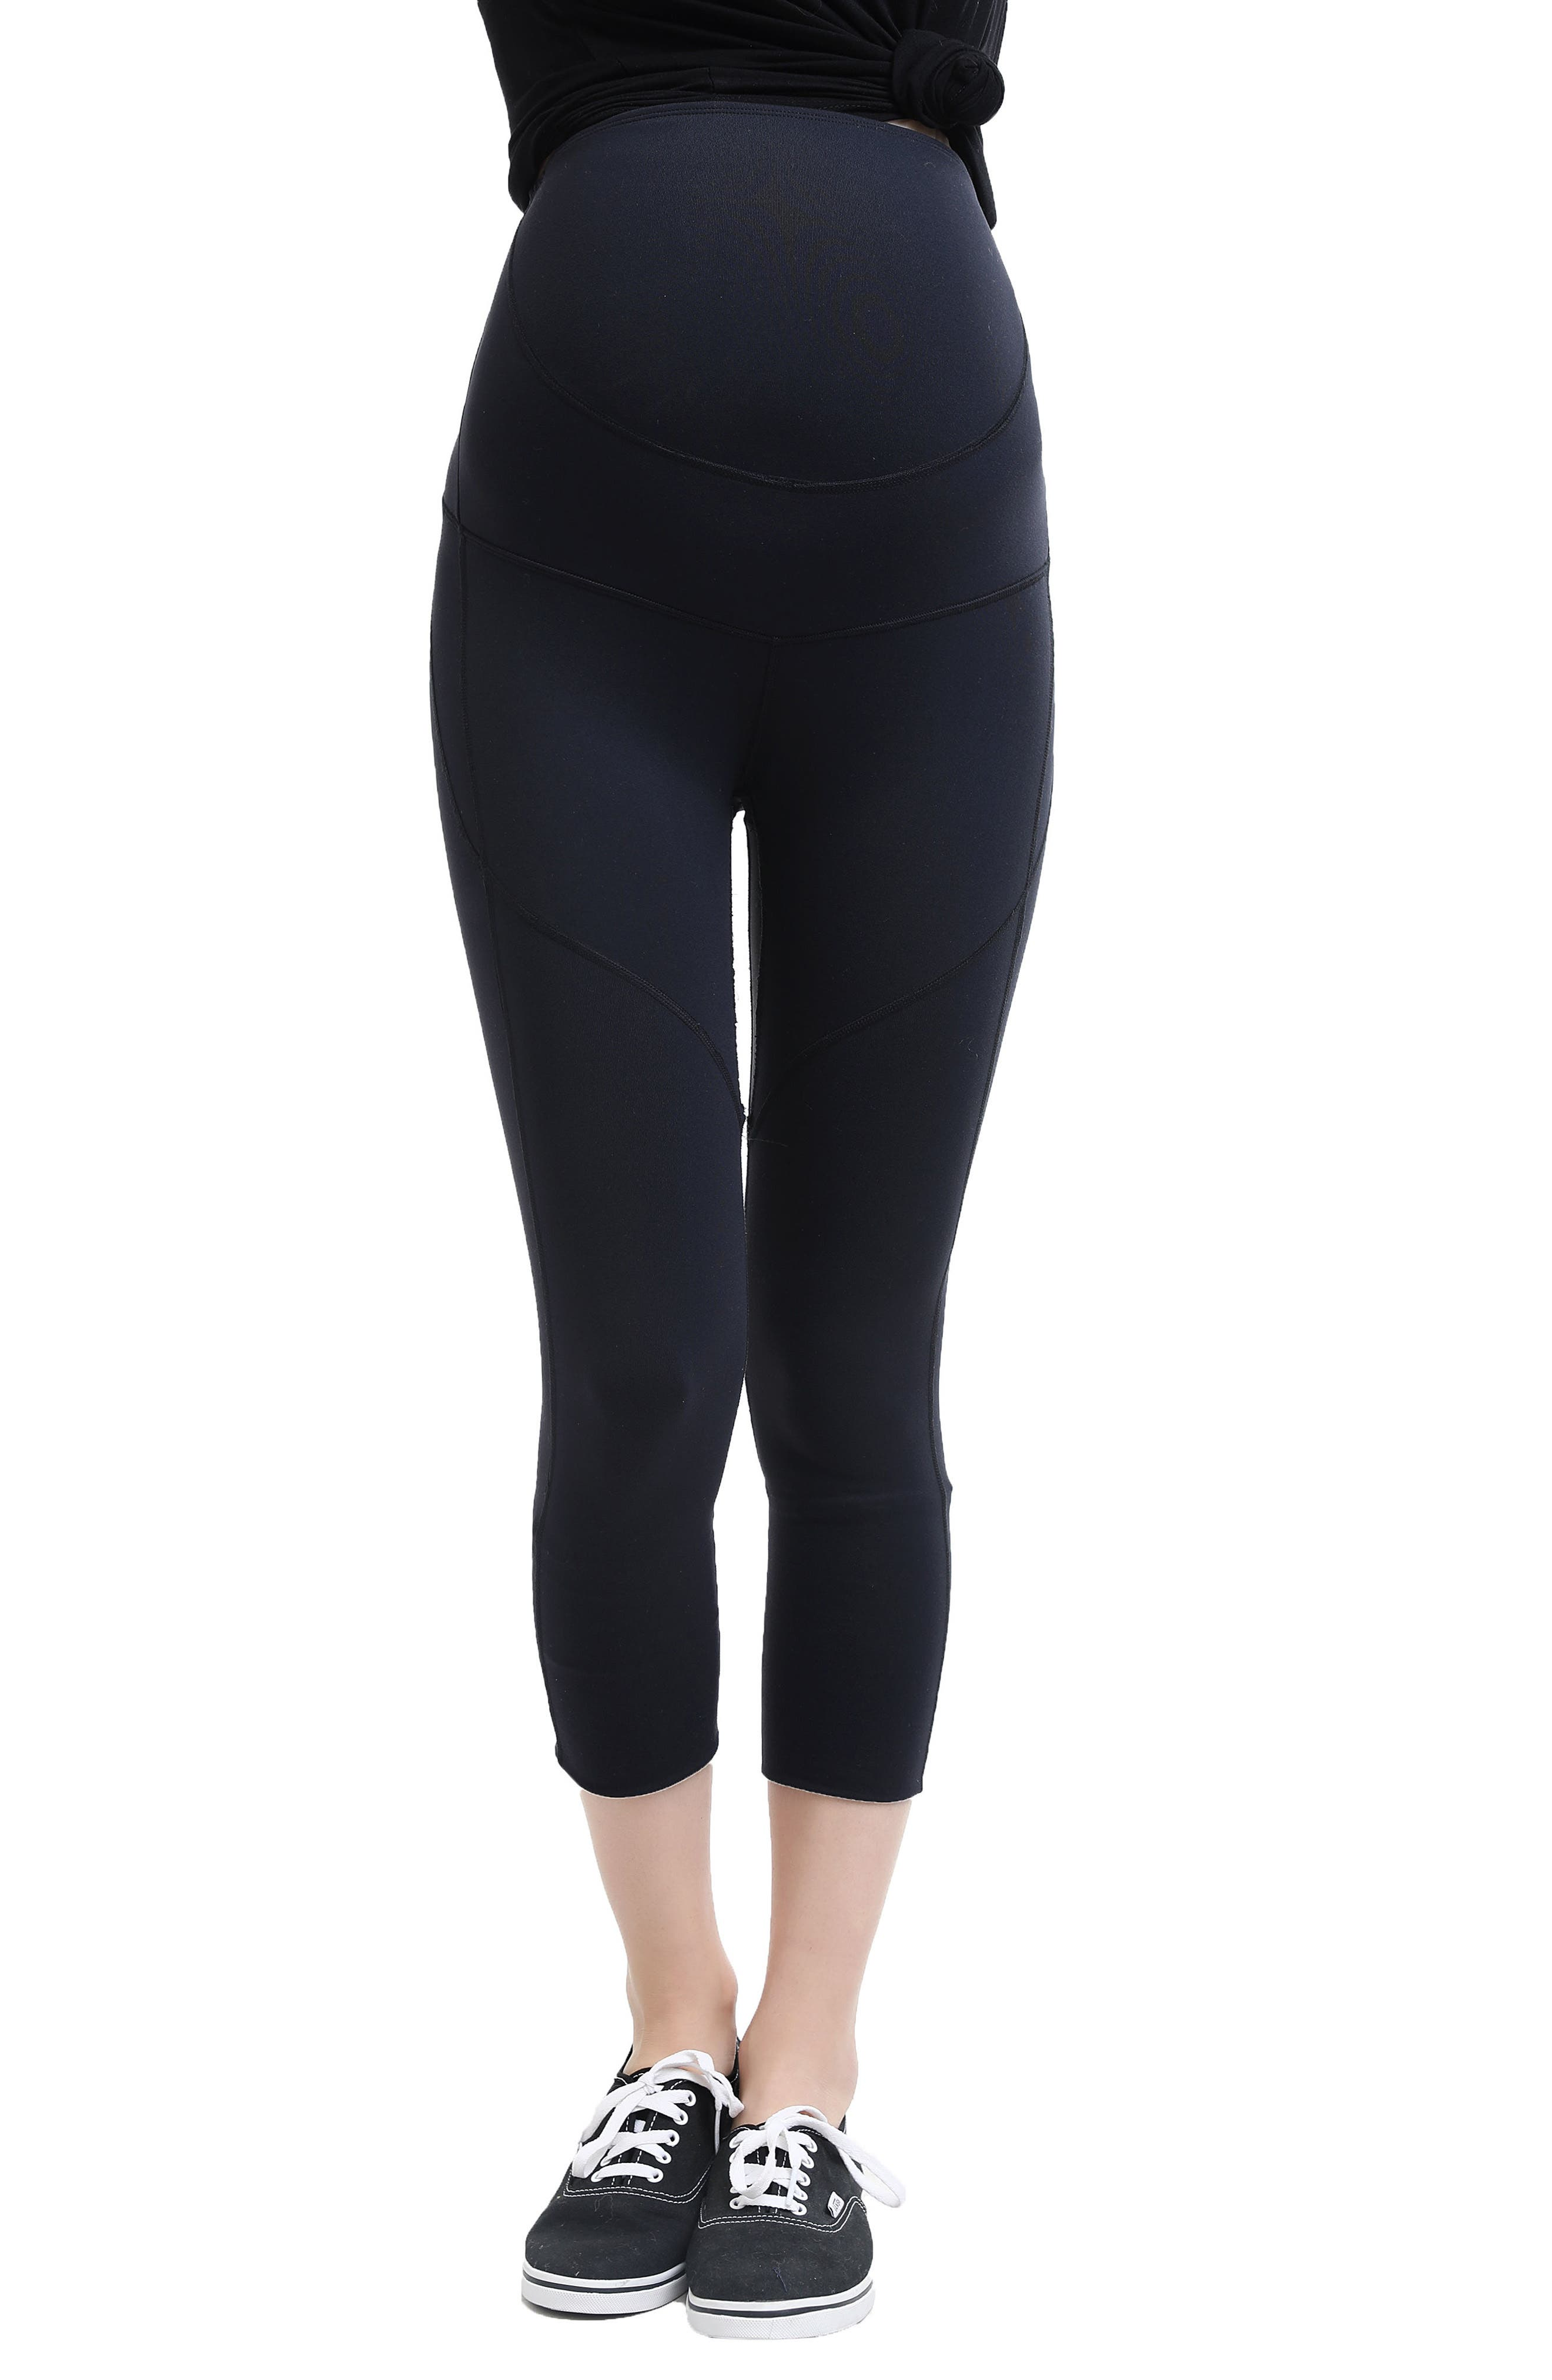 Kimi and Kai Elle High Performance Cropped Maternity Leggings